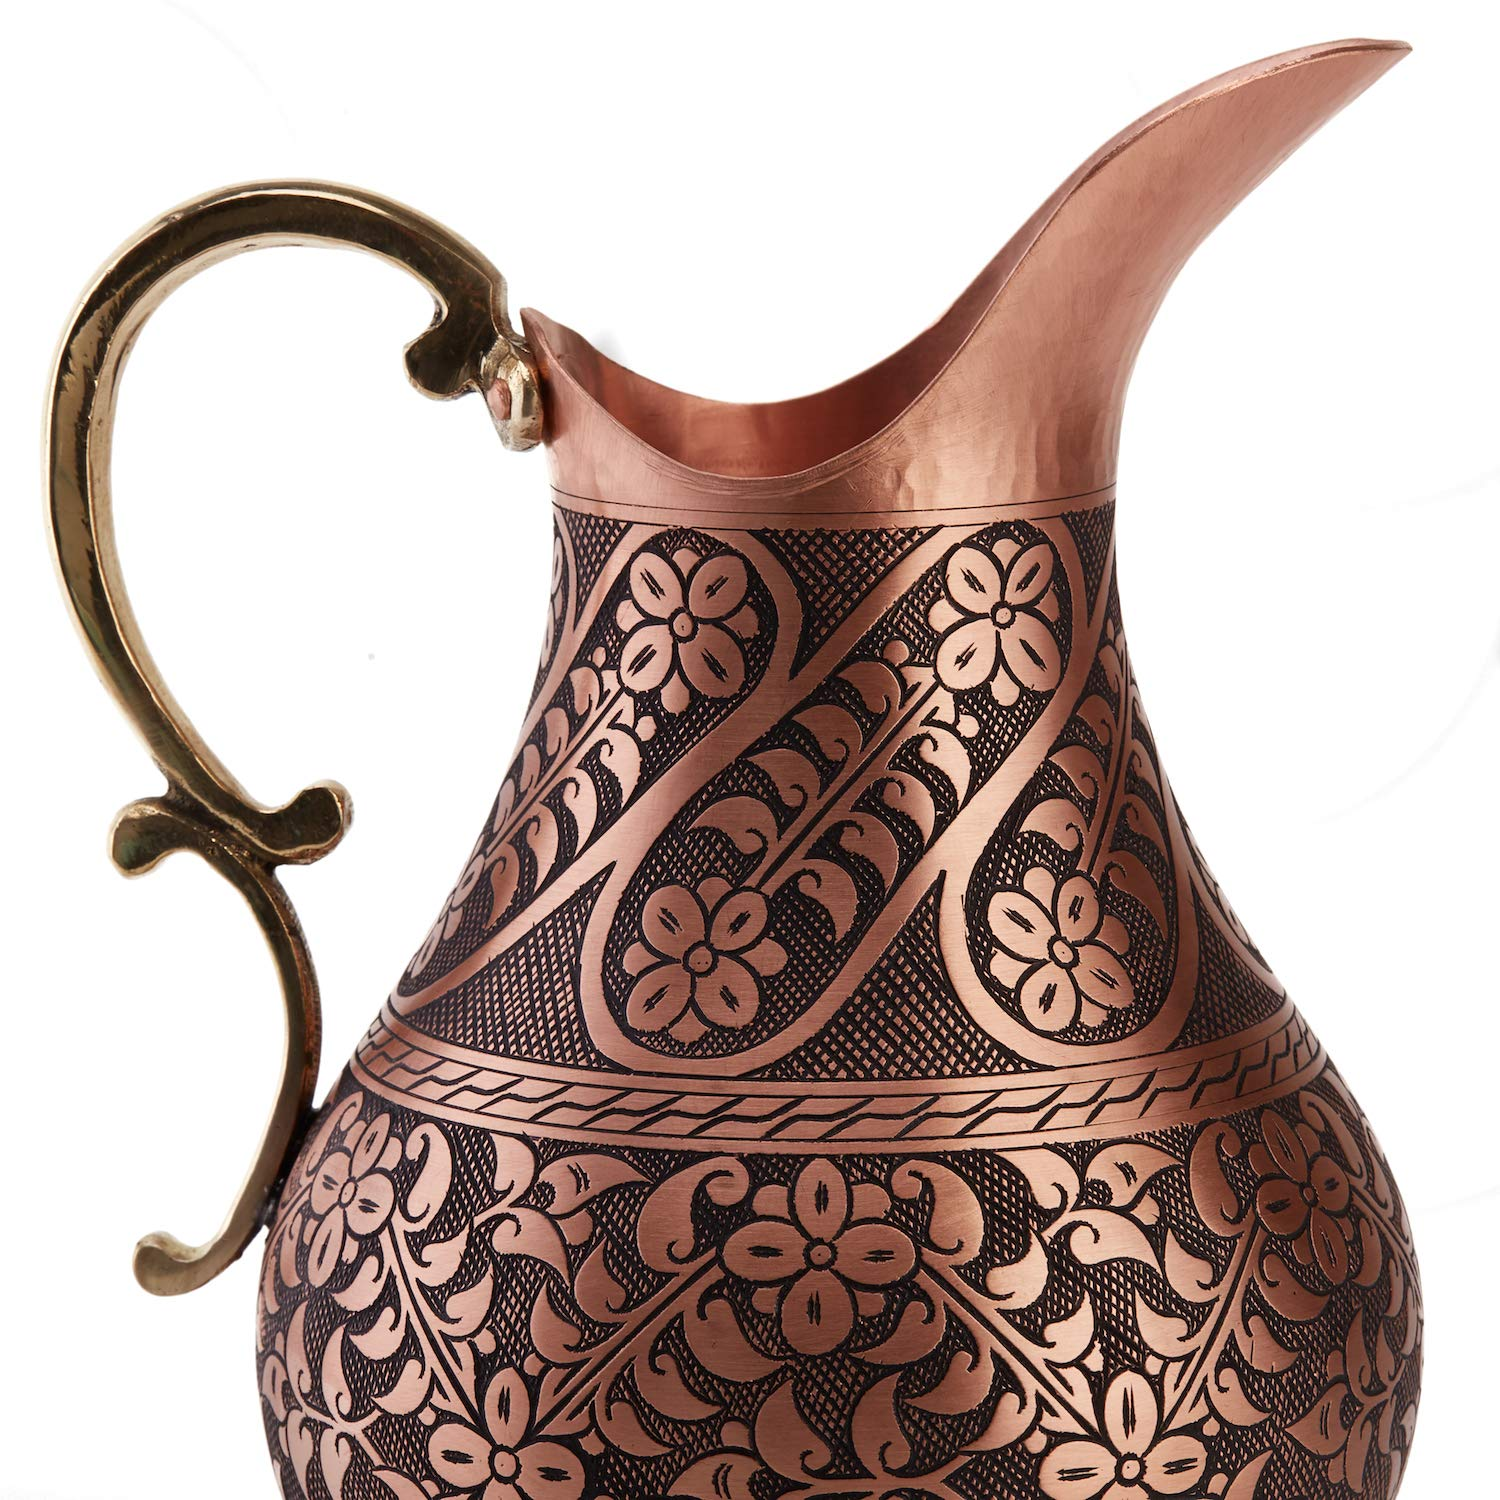 DEMMEX The Pitcher, 1mm Solid Copper Handmade Engraved Copper Pitcher Vessel Ayurveda Jug for Drinking Water, Moscow Mule, Cocktail (Matte-ArtWork) by DEMMEX (Image #5)